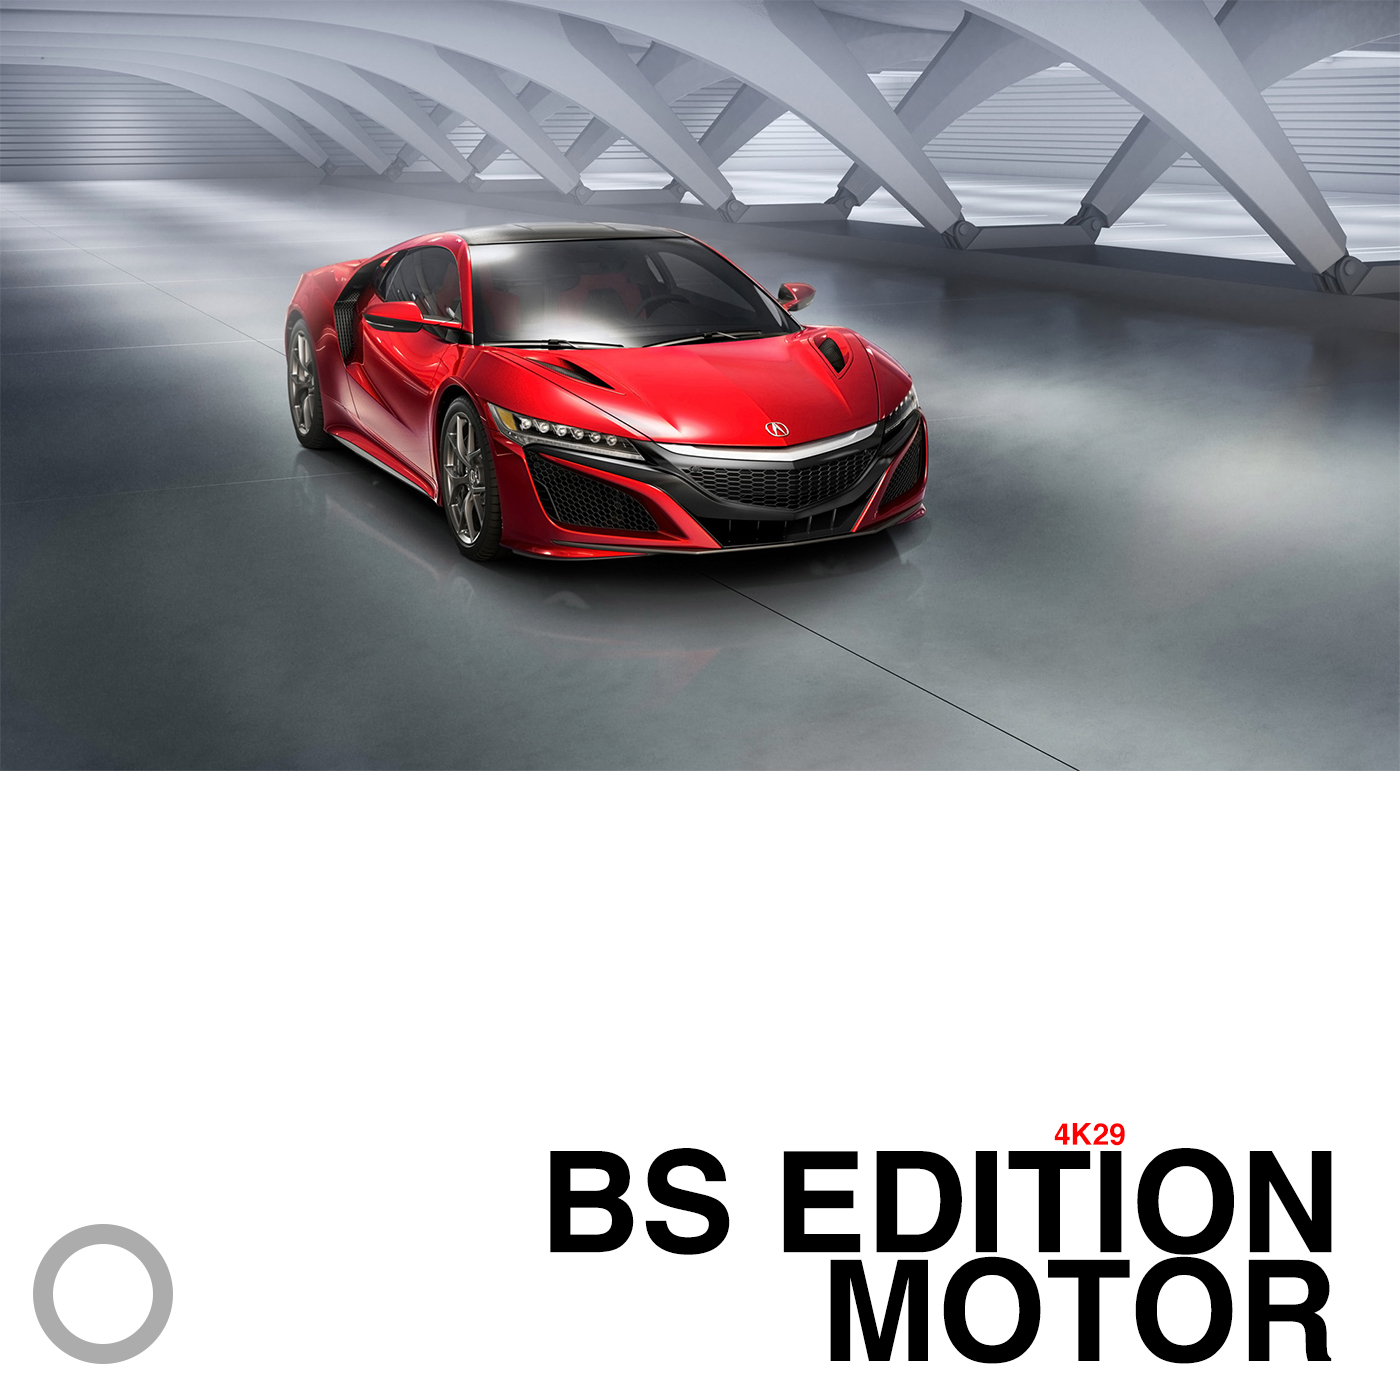 BS EDITION MOTOR 4K29 MOBILE640